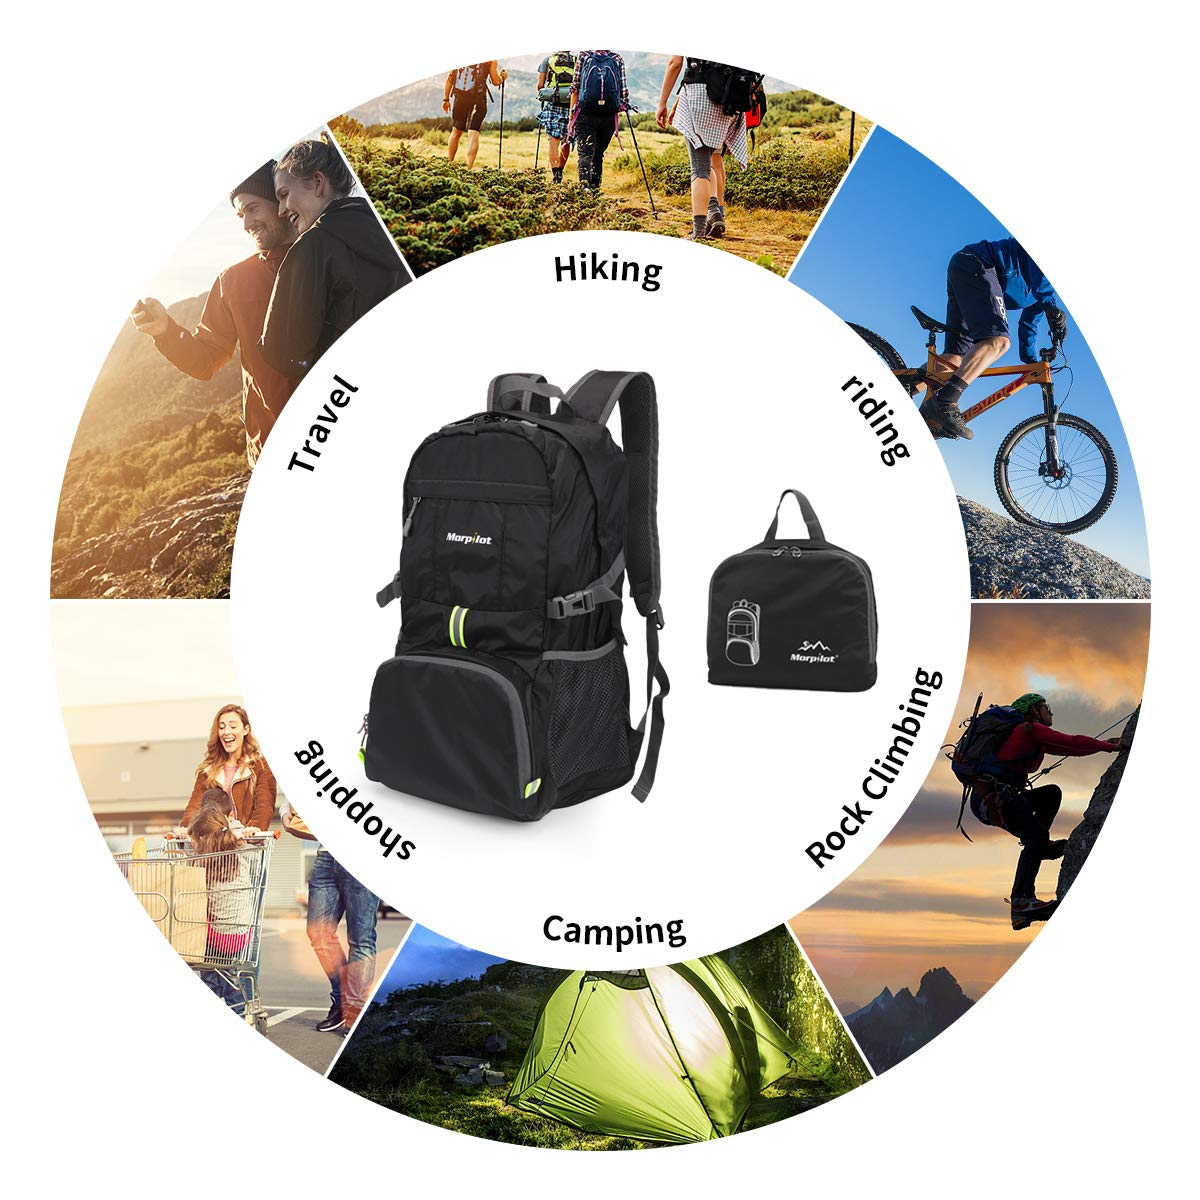 Morpilot Ultra Lightweight 35L Packable Backpack Water Resistant Travel Hiking Daypack Folding Camping Cycling Outdoor Handy Backpack